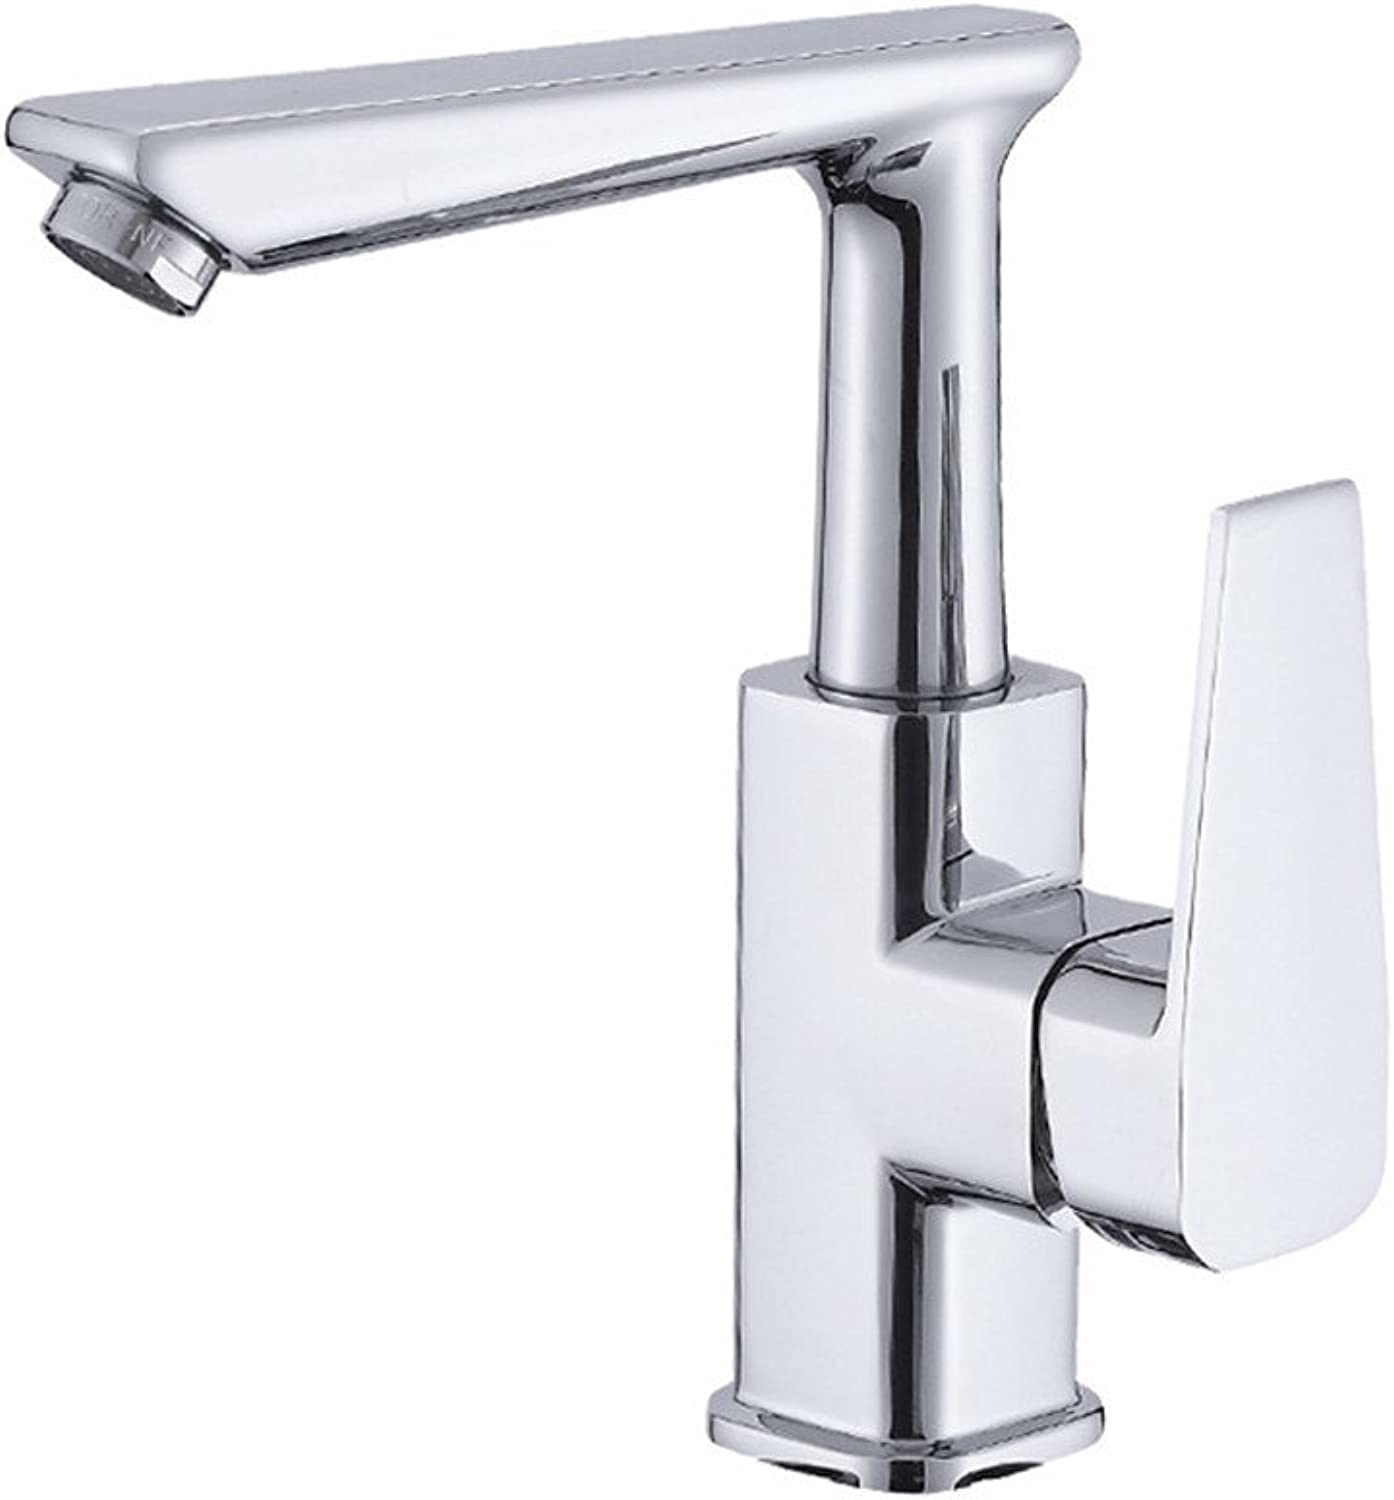 The kitchen sink faucet and cold water faucet dish washing basin basin with two taps kitchen Single Handle faucet home single hole Faucet